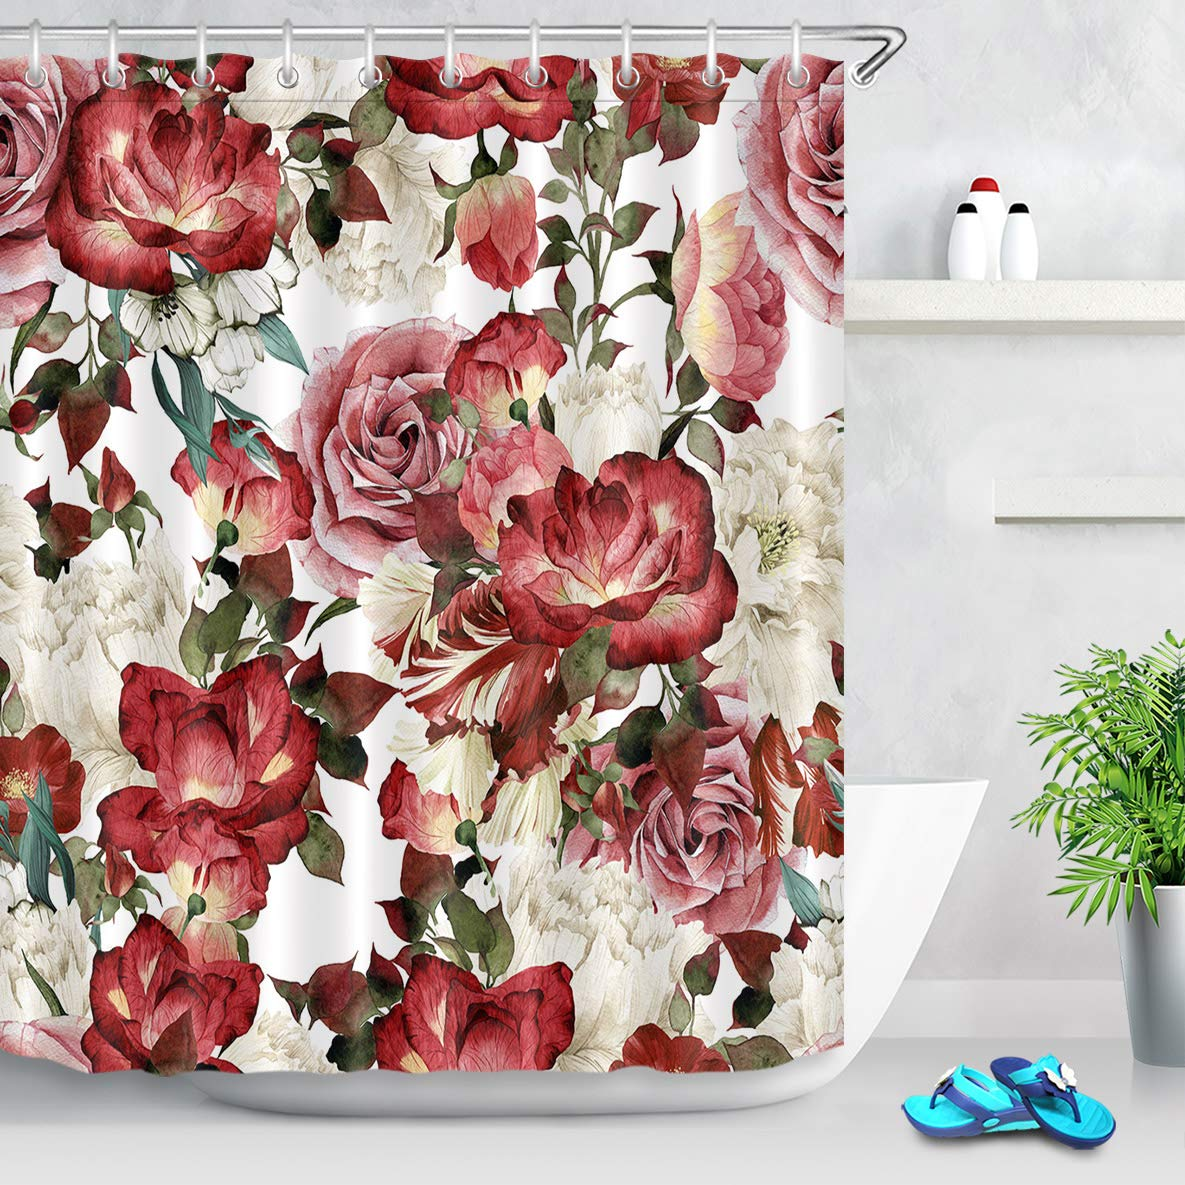 Lb Vintage Floral Shower Curtain With Hooks Peony Rose Flower Blossom Bathroom Curtain Red Pink White 60x72 Inch Waterproof Polyester Fabric Bathroom Accessories